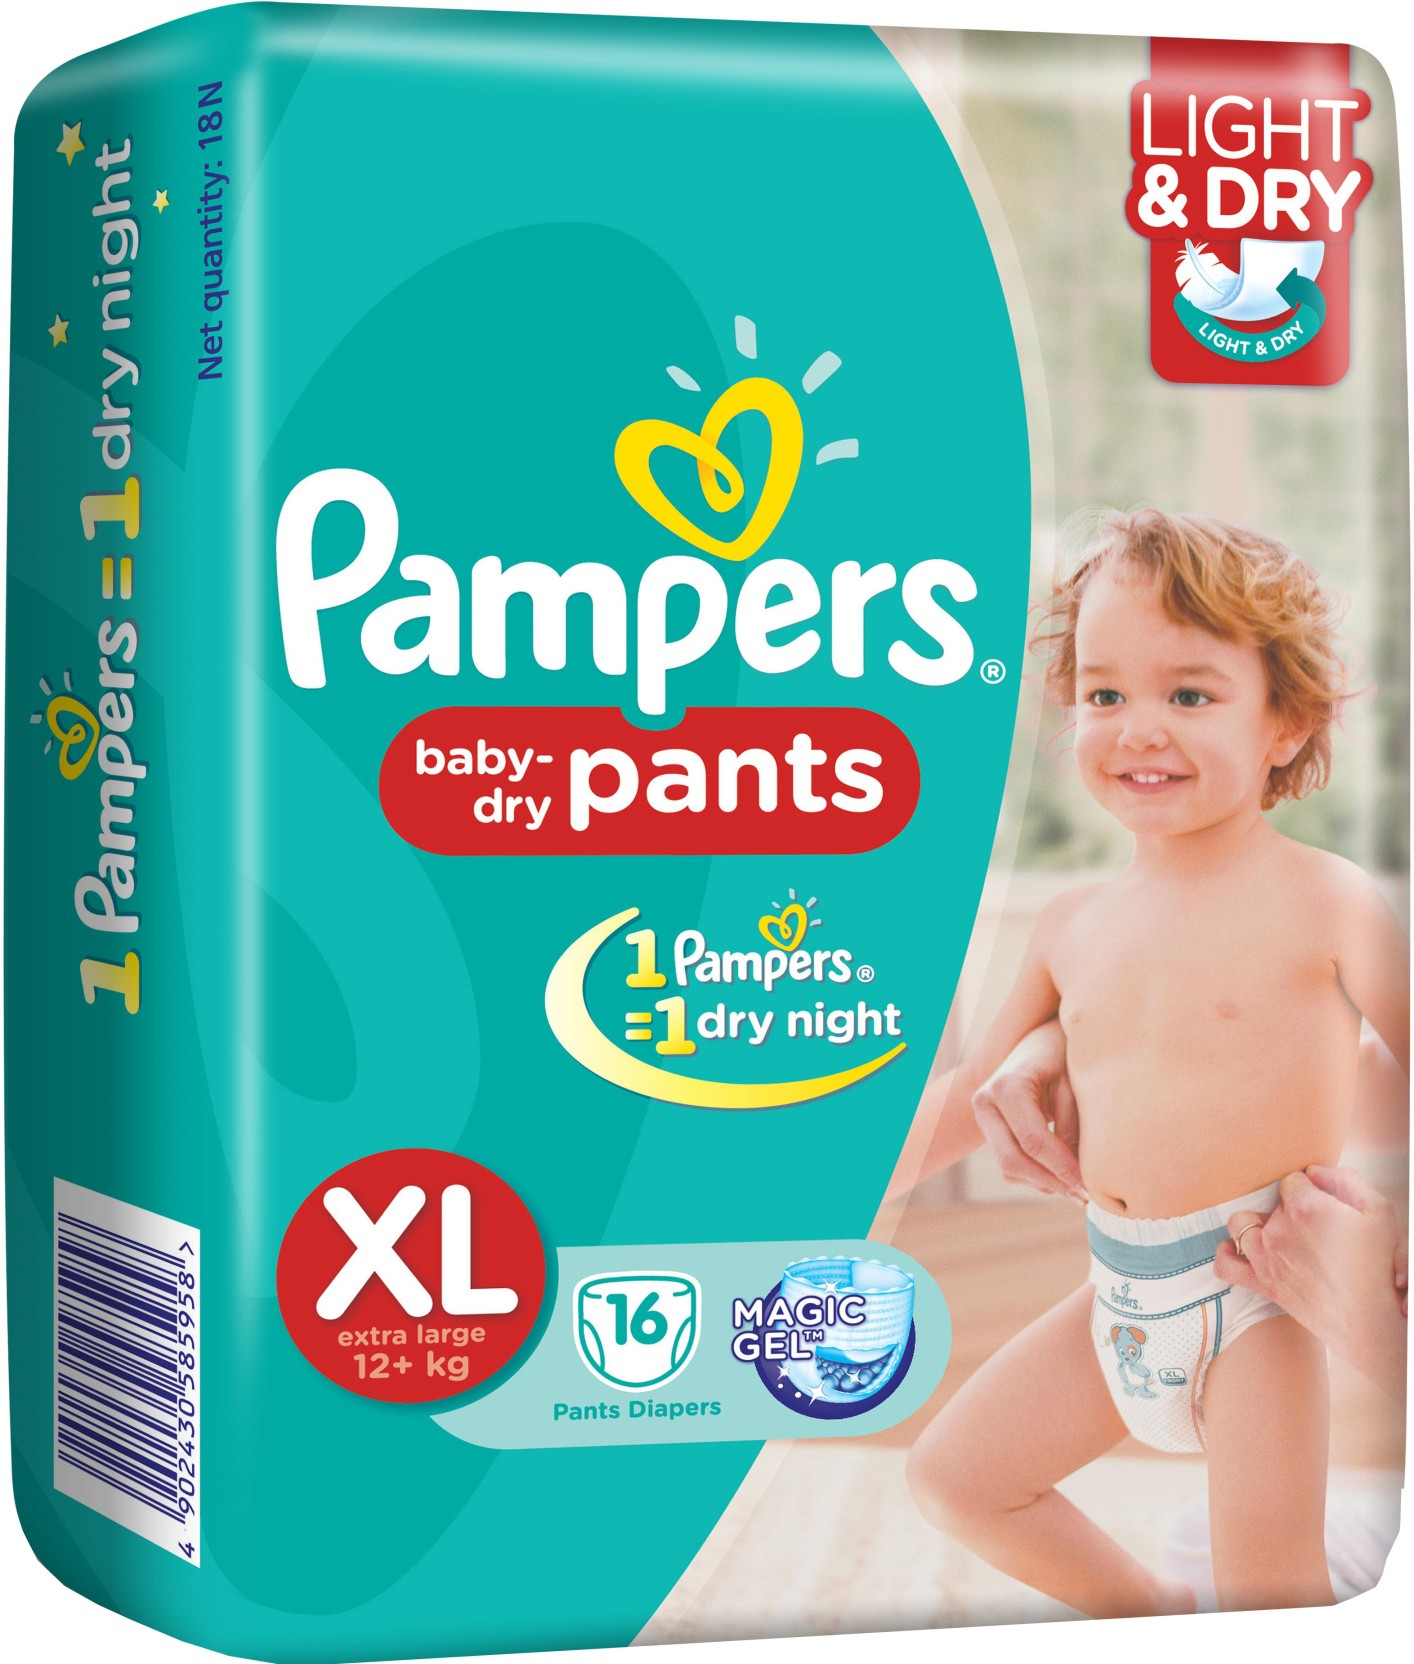 Pampers Pants Diaper Extra Large Size Buy 16 Cotton Like Mamypoko Dry Xl26 Home